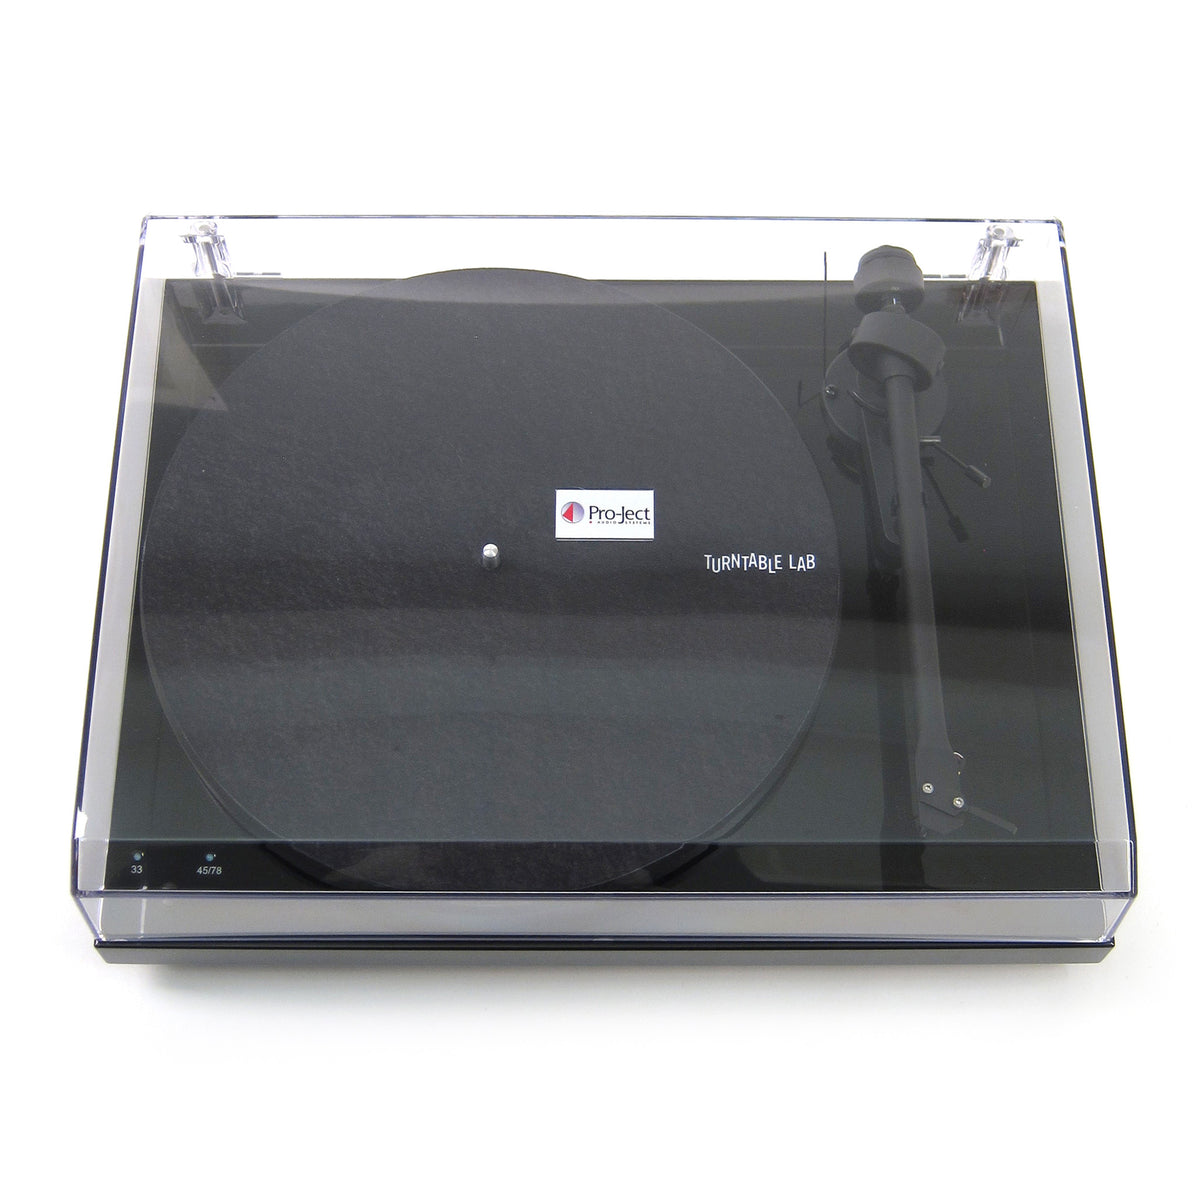 Pro-Ject: Debut III RecordMaster USB Turntable (OM10) - Black